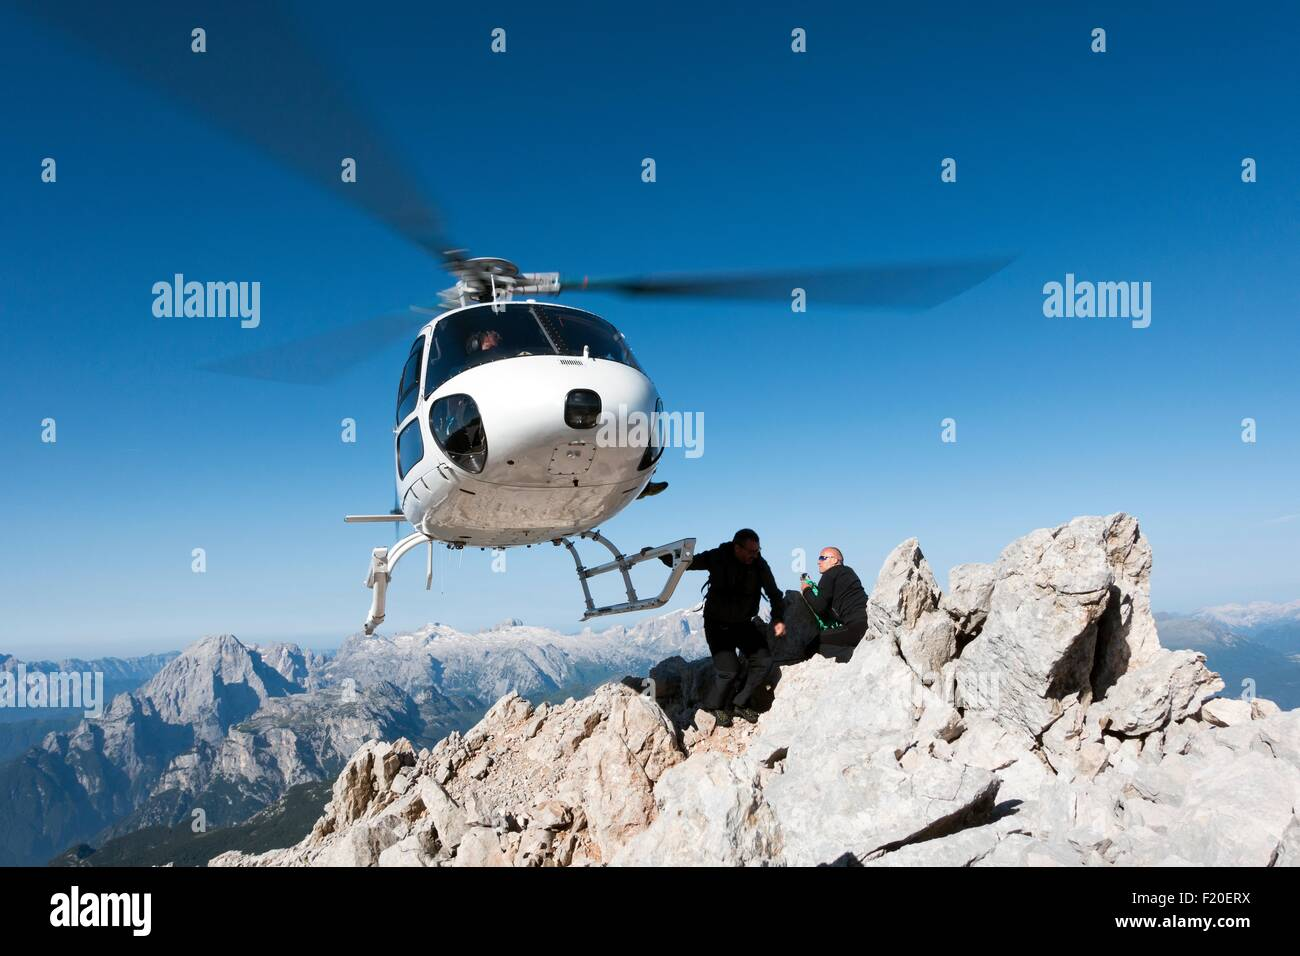 Helicopter dropping BASE jumpers on mountain, Dolomites, Italy - Stock Image